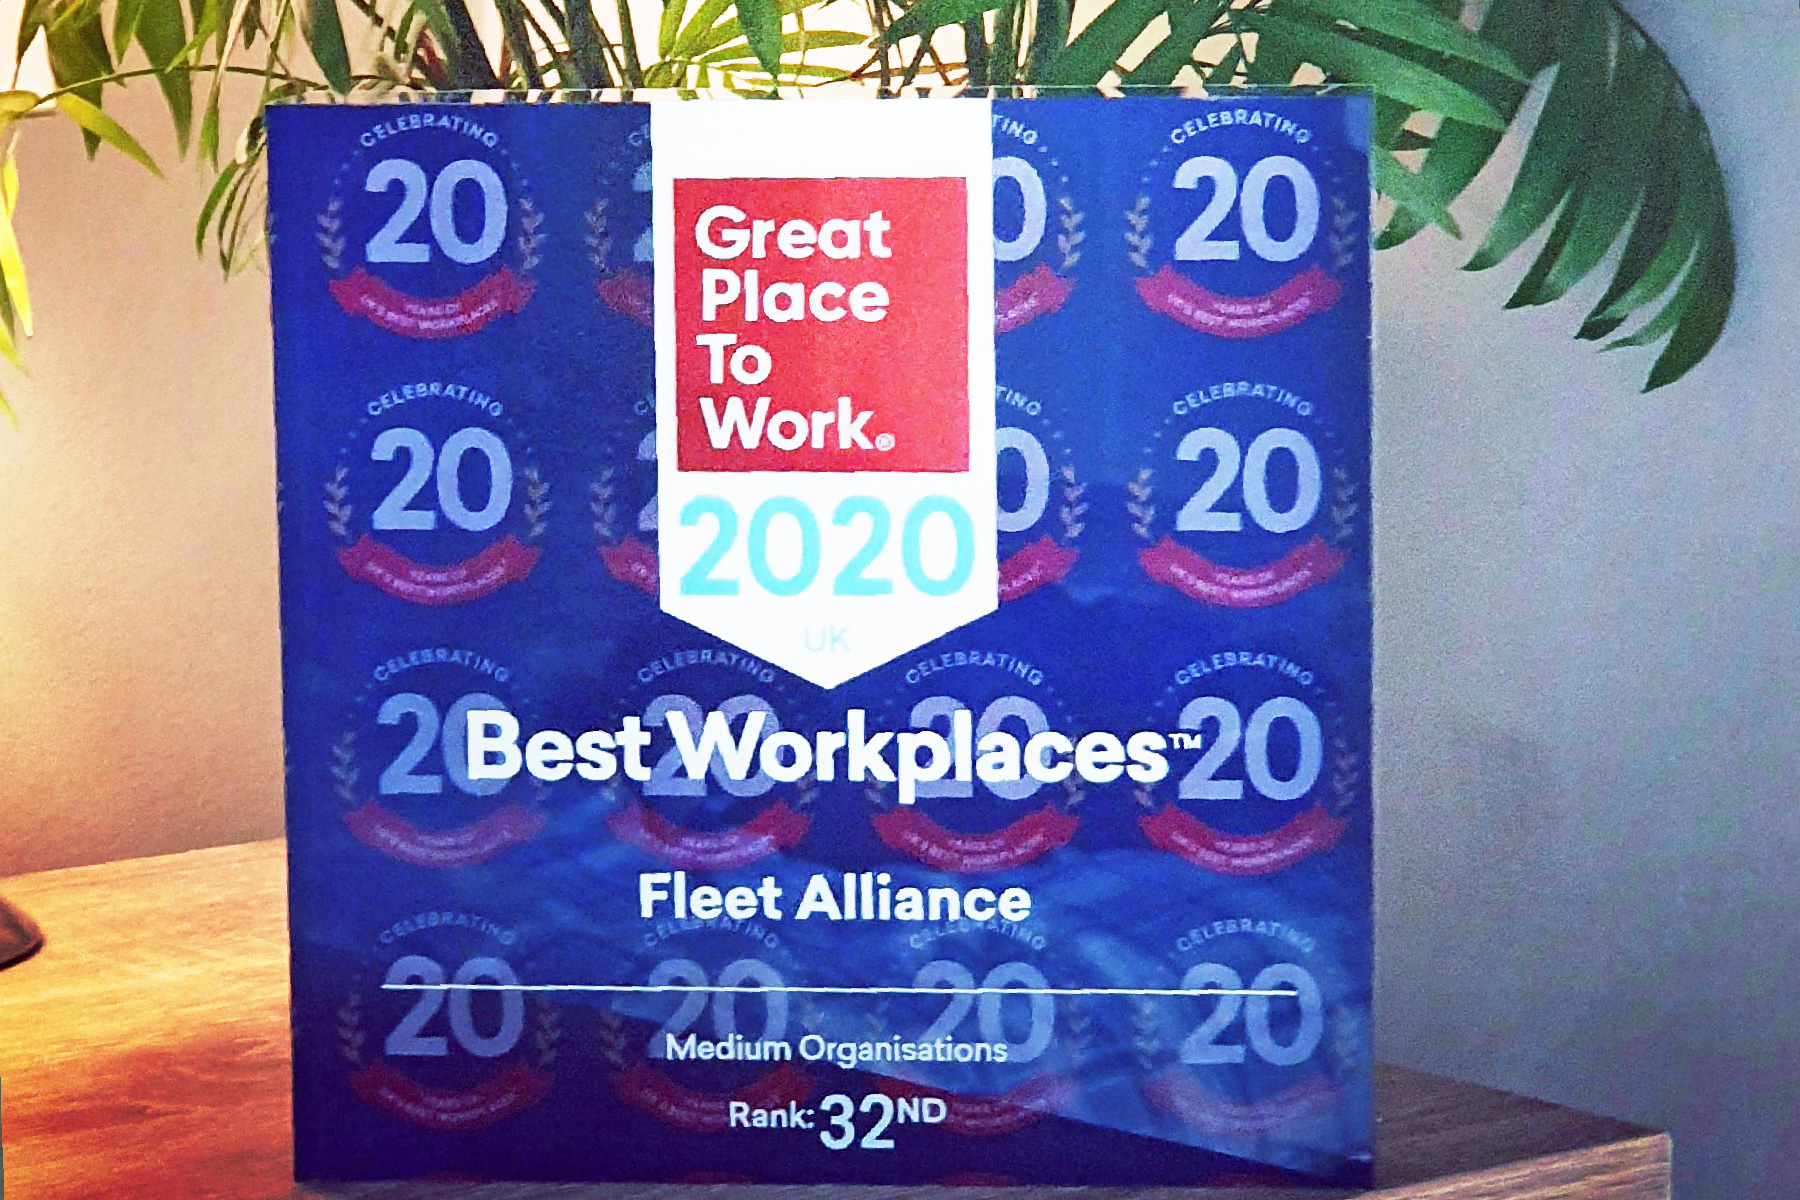 Fleet Alliance named as one of UK's Best Places to Work 2020